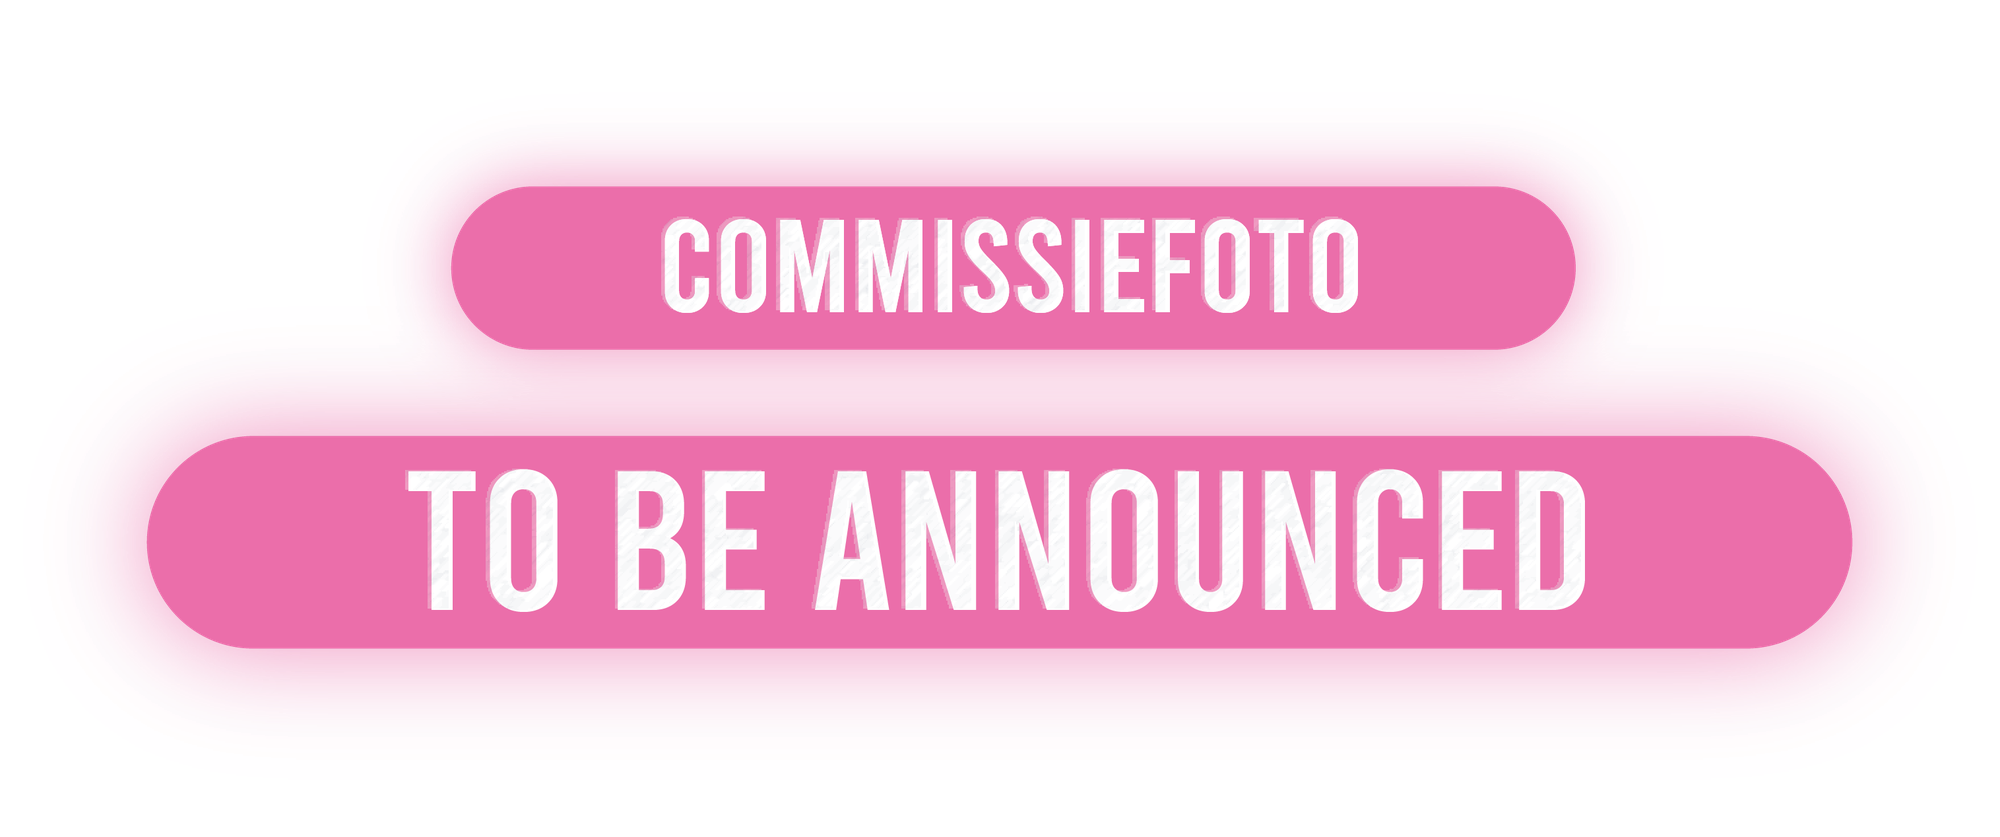 Commissie-to-be-announced.png